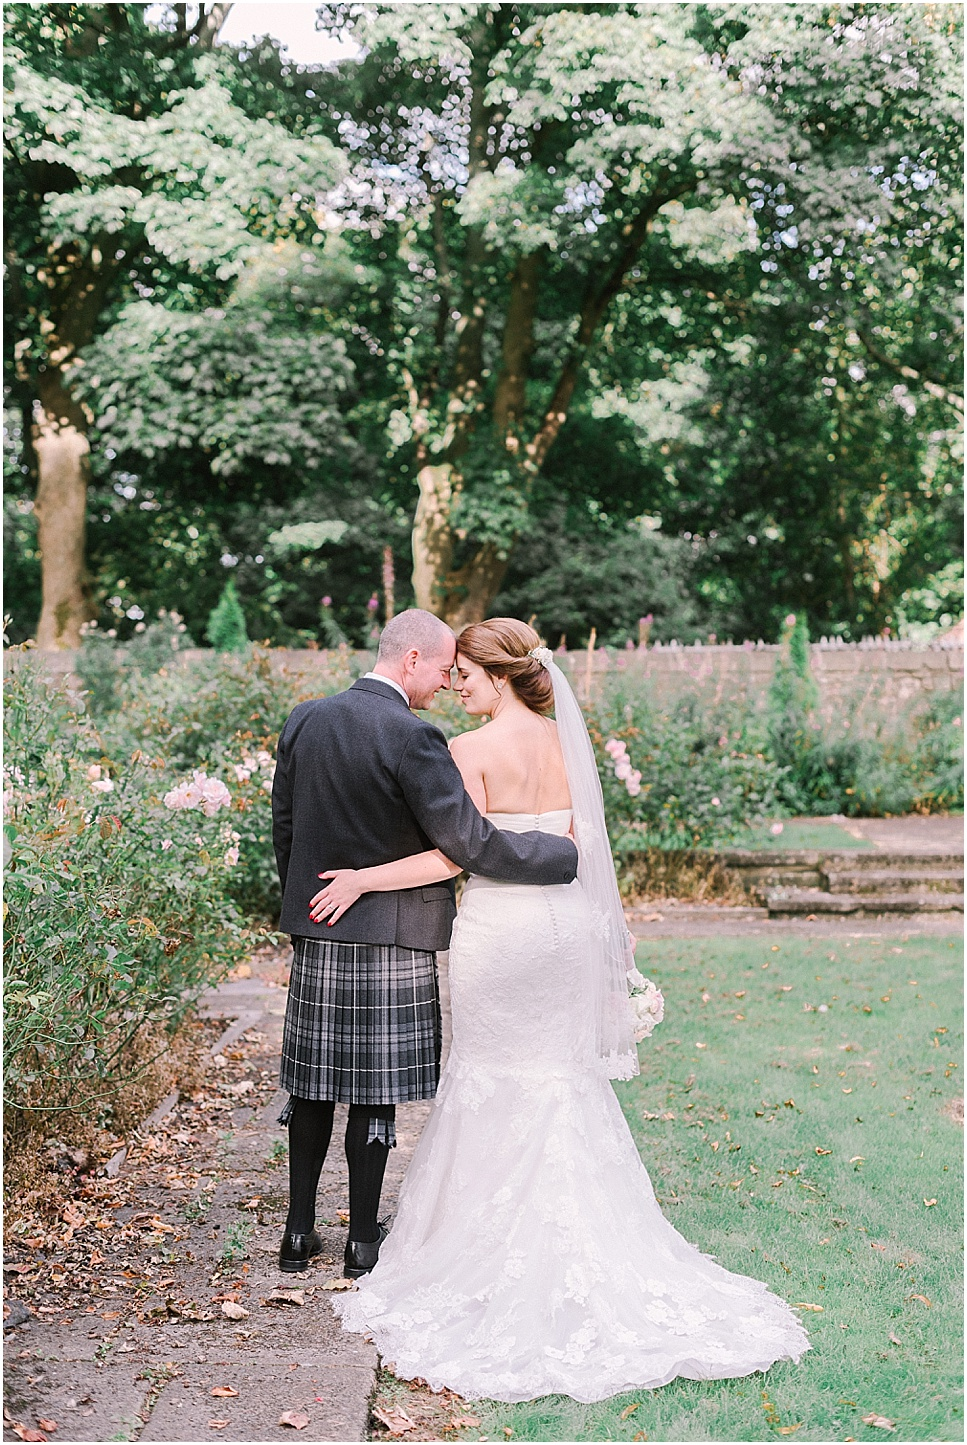 mareikemurray_wedding_photography_linlithgow_burgh_halls_001.jpg